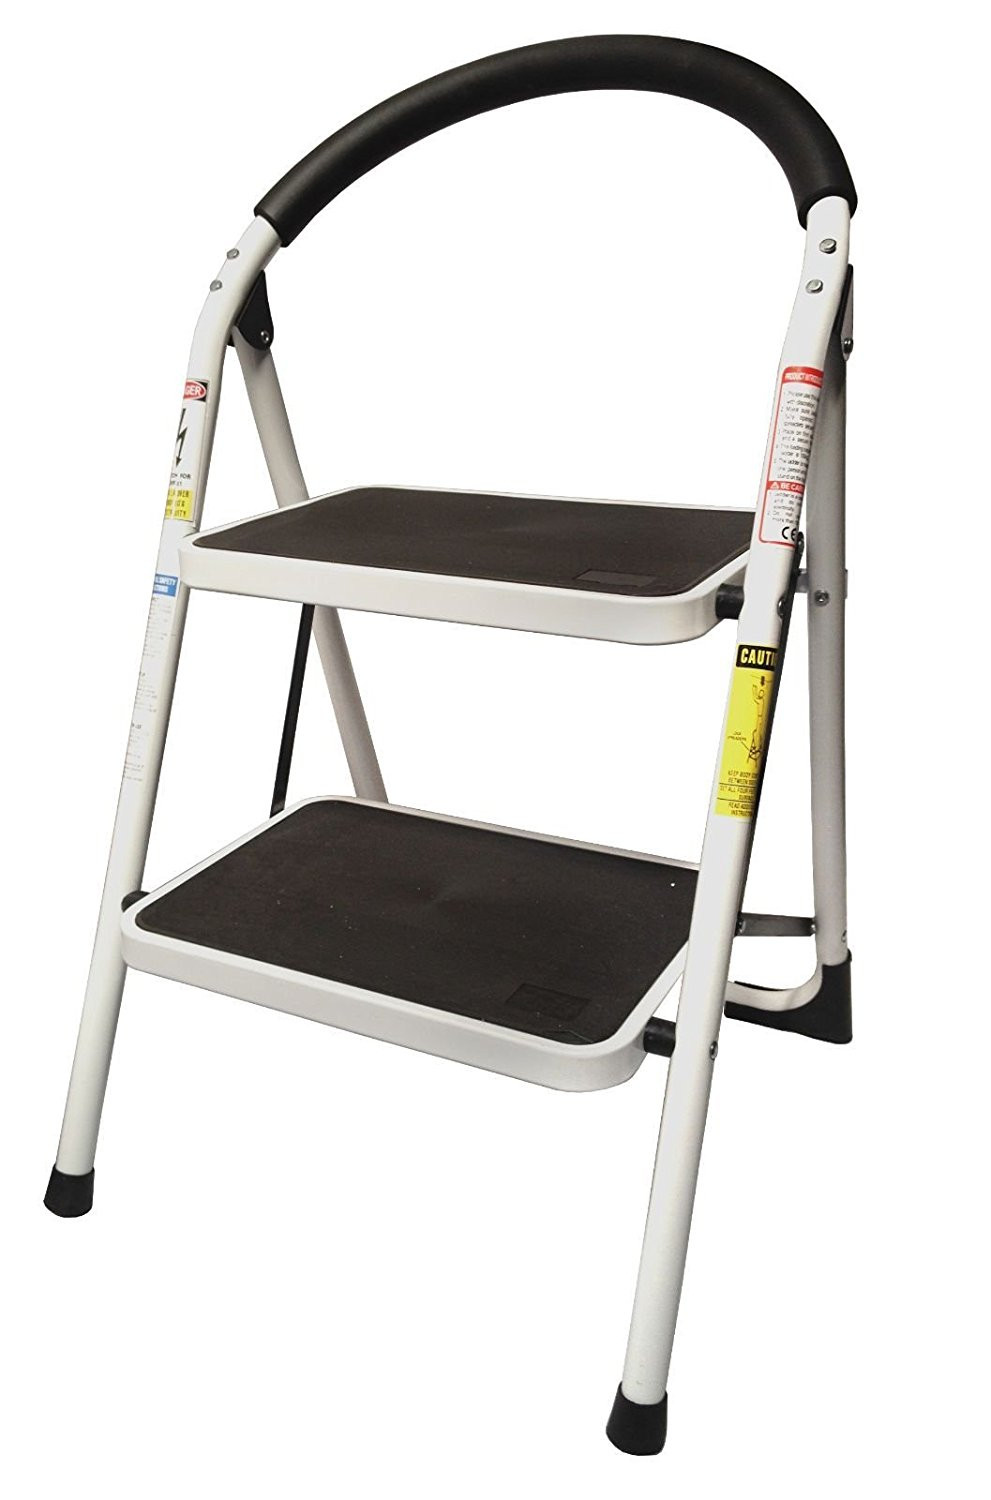 StepUp Heavy Duty Steel Reinforced Folding 2 Step Ladder Stool - 330 lbs Capacity  sc 1 st  Walmart : folding step up stool - islam-shia.org